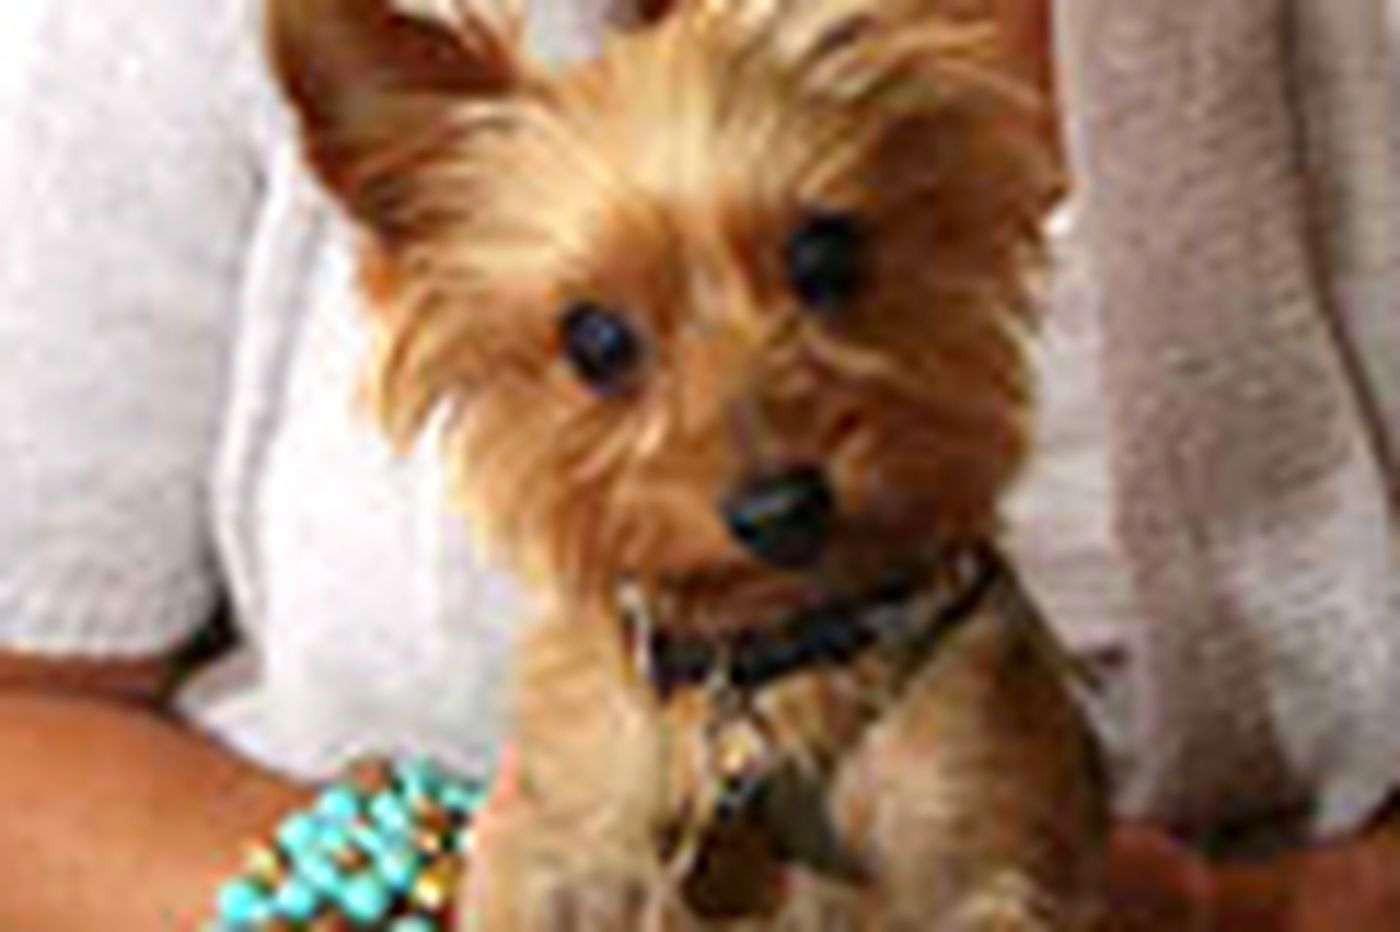 Phone services help find lost pets like Ozzie